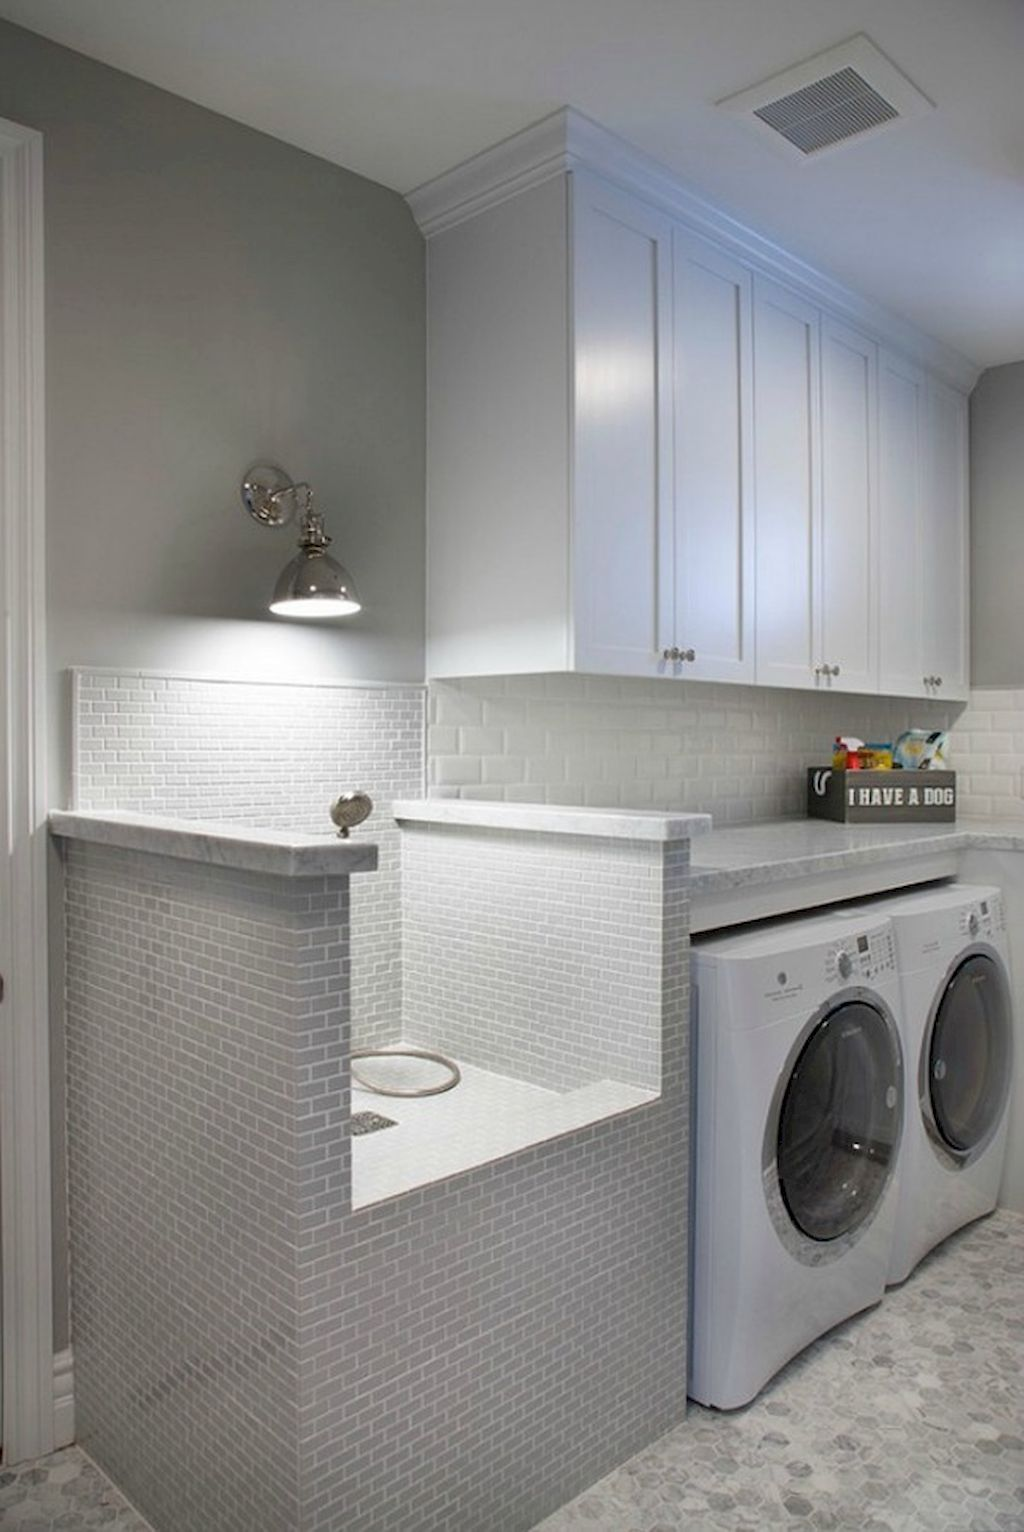 pin by lisa malice on home ideas laundry room laundry room rh pinterest com